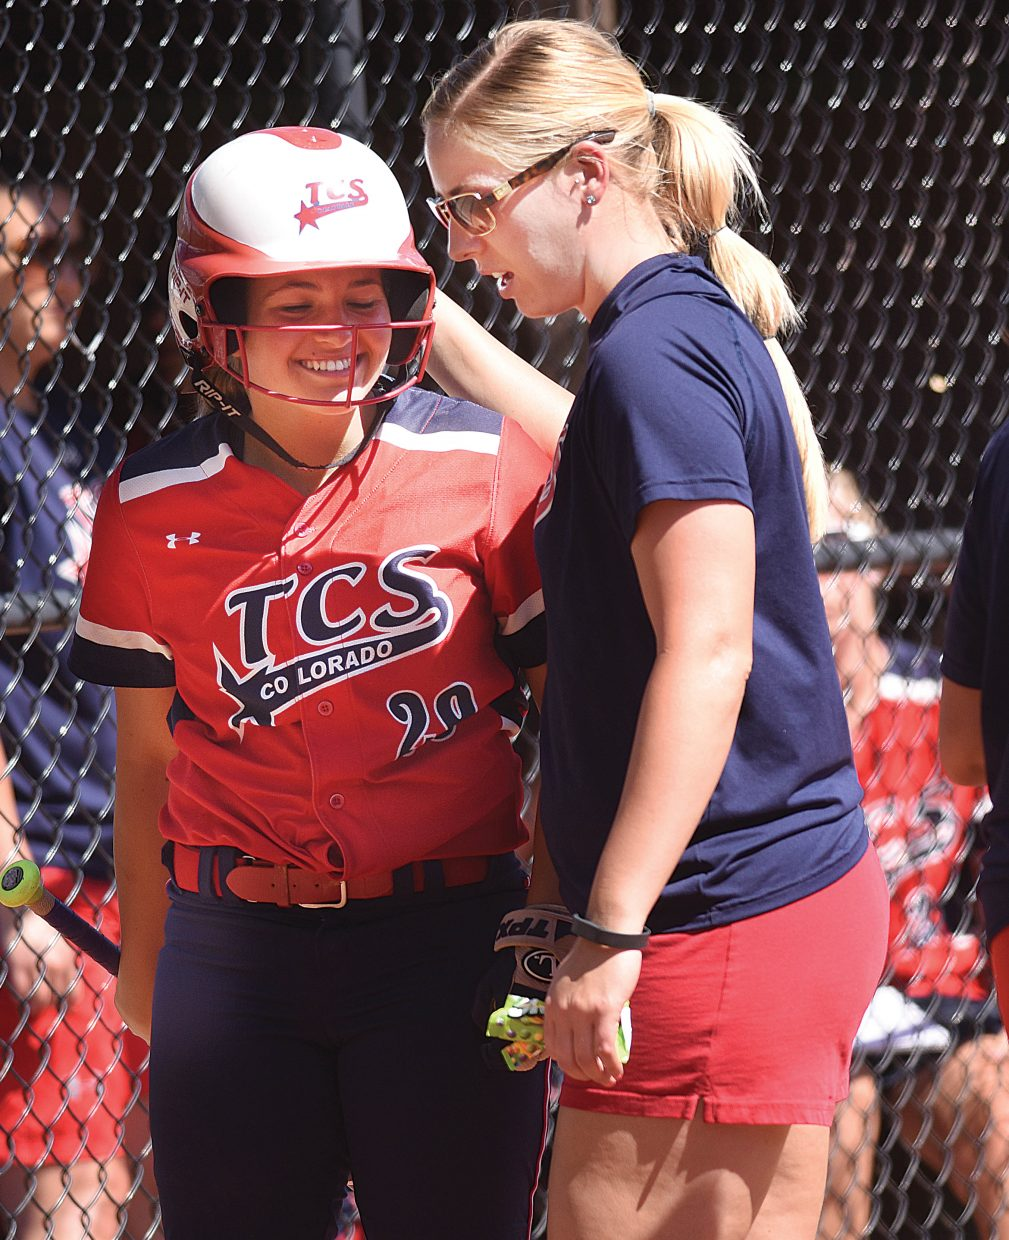 TCS player Brittany Bigge gets a few words of encouragement from her coach Friday afternoon during the Triple Crown Mountain Magic girls fast pitch softball tournament.